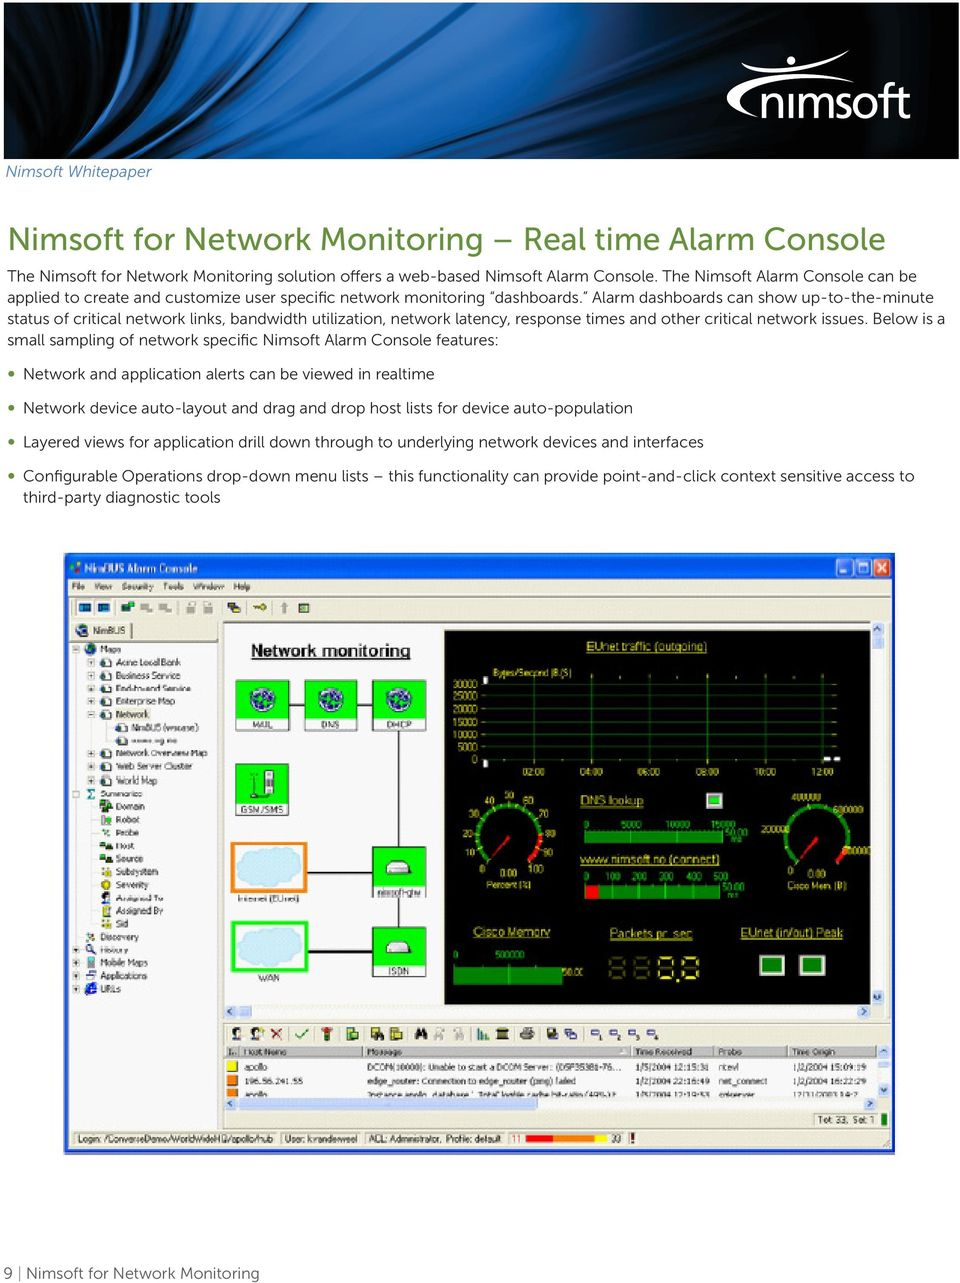 Alarm dashboards can show up-to-the-minute status of critical network links, bandwidth utilization, network latency, response times and other critical network issues.